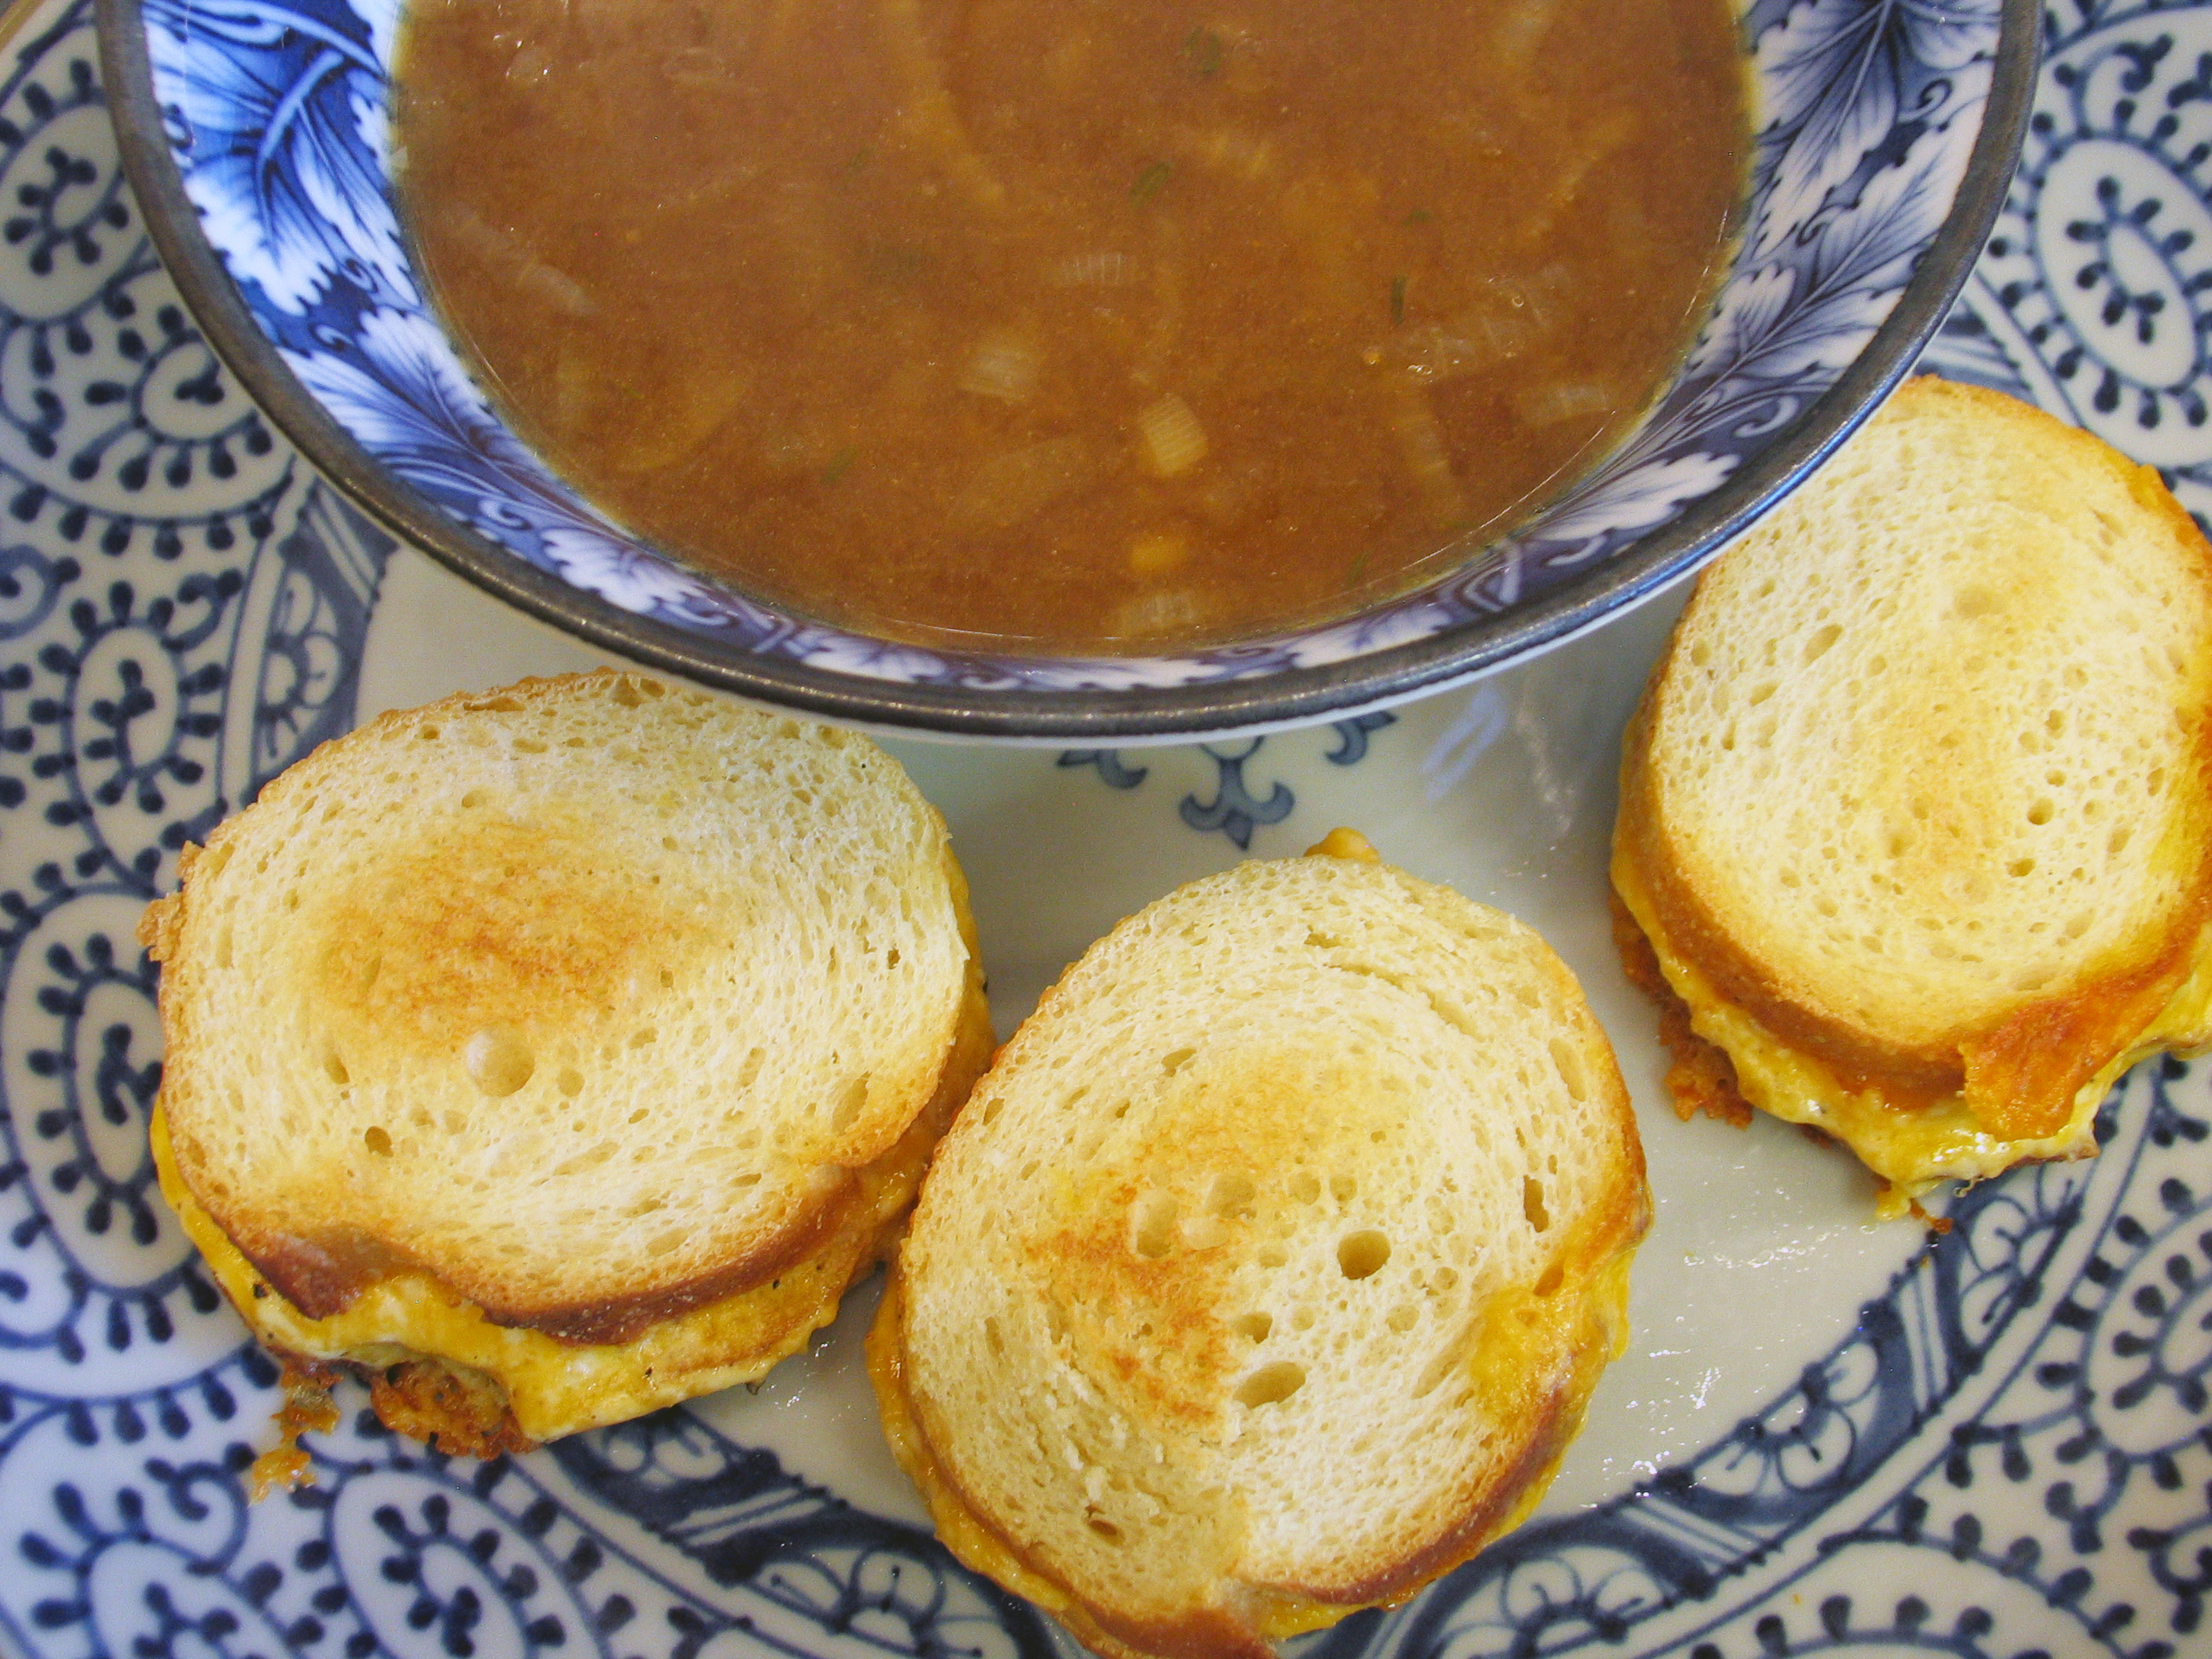 French Onion Soup (and Toasted Cheese Sandwiches)